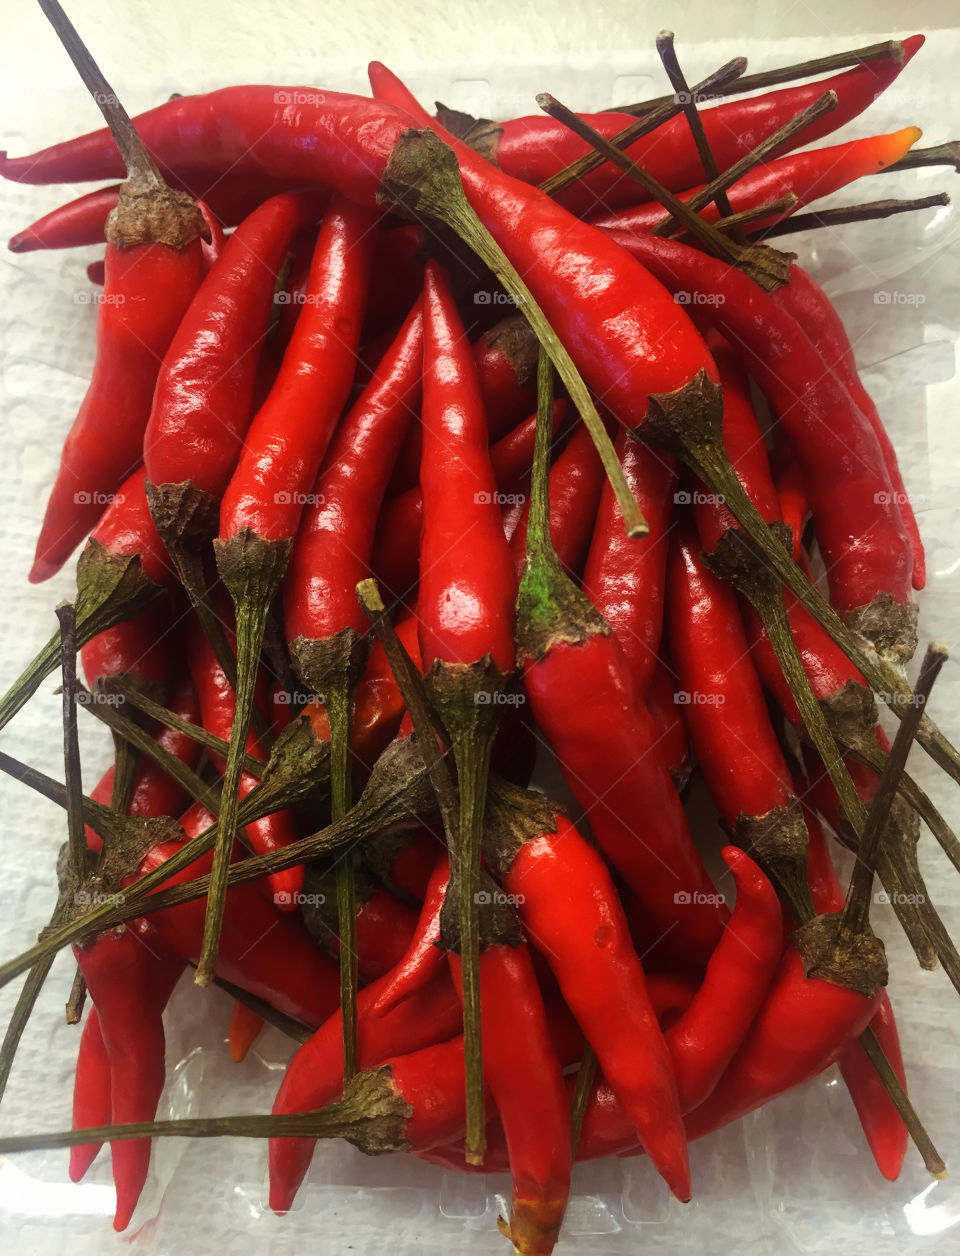 Red Thai chili peppers